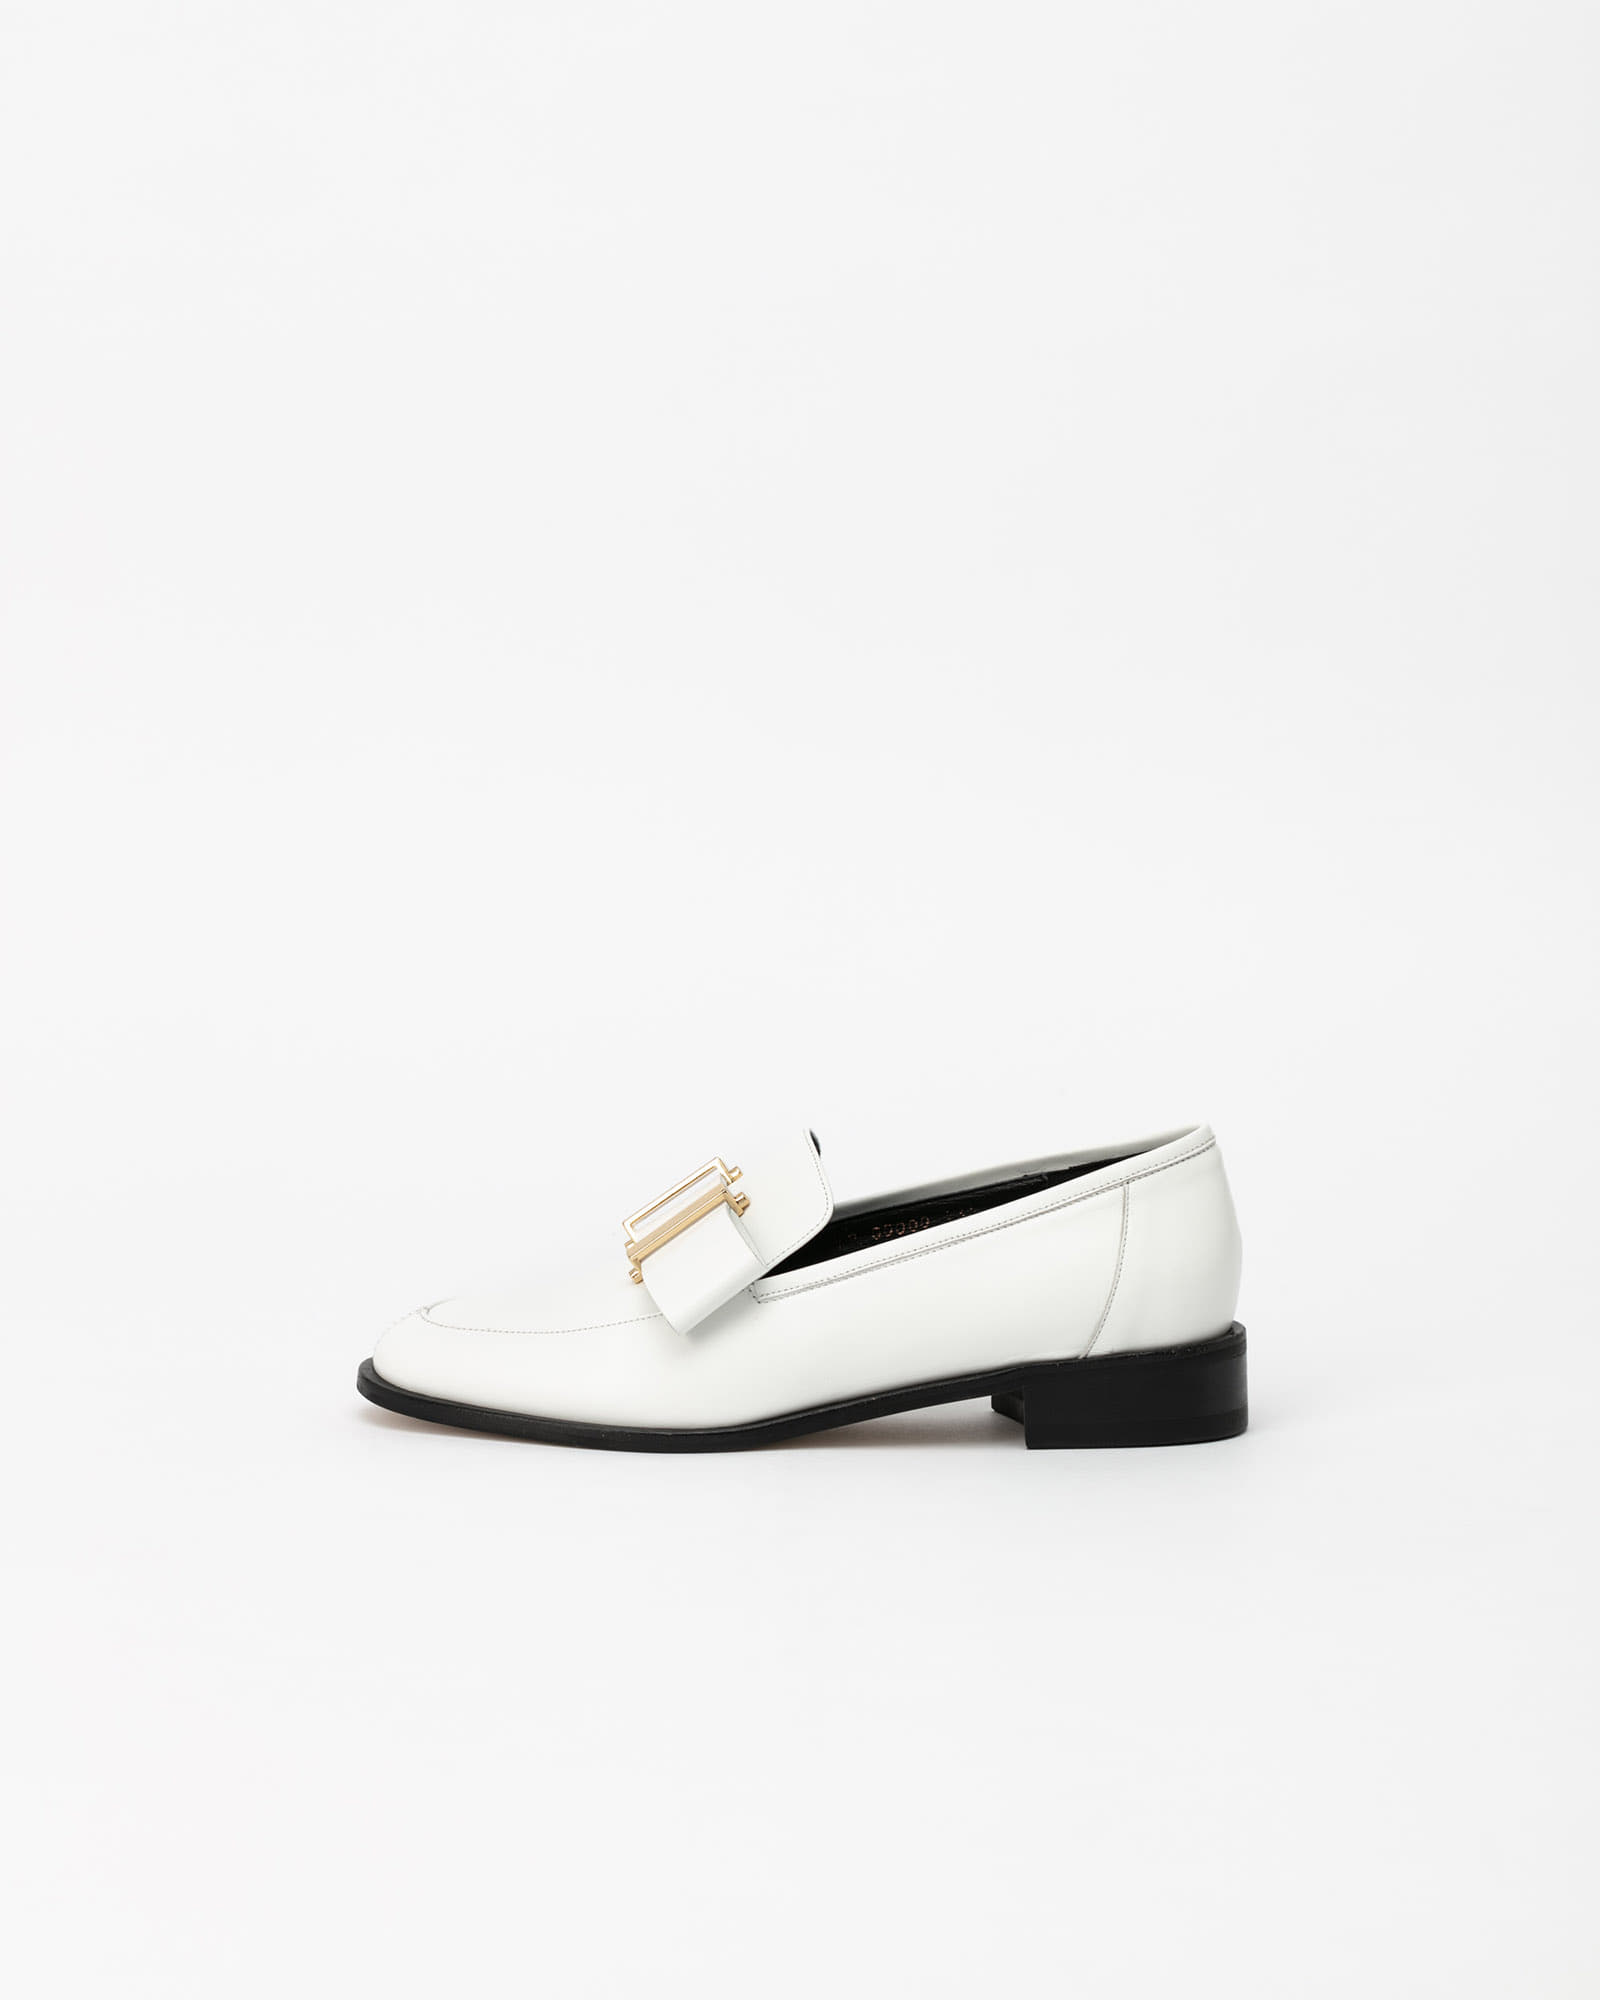 Dosoro Slip-on Loafers in Pure White